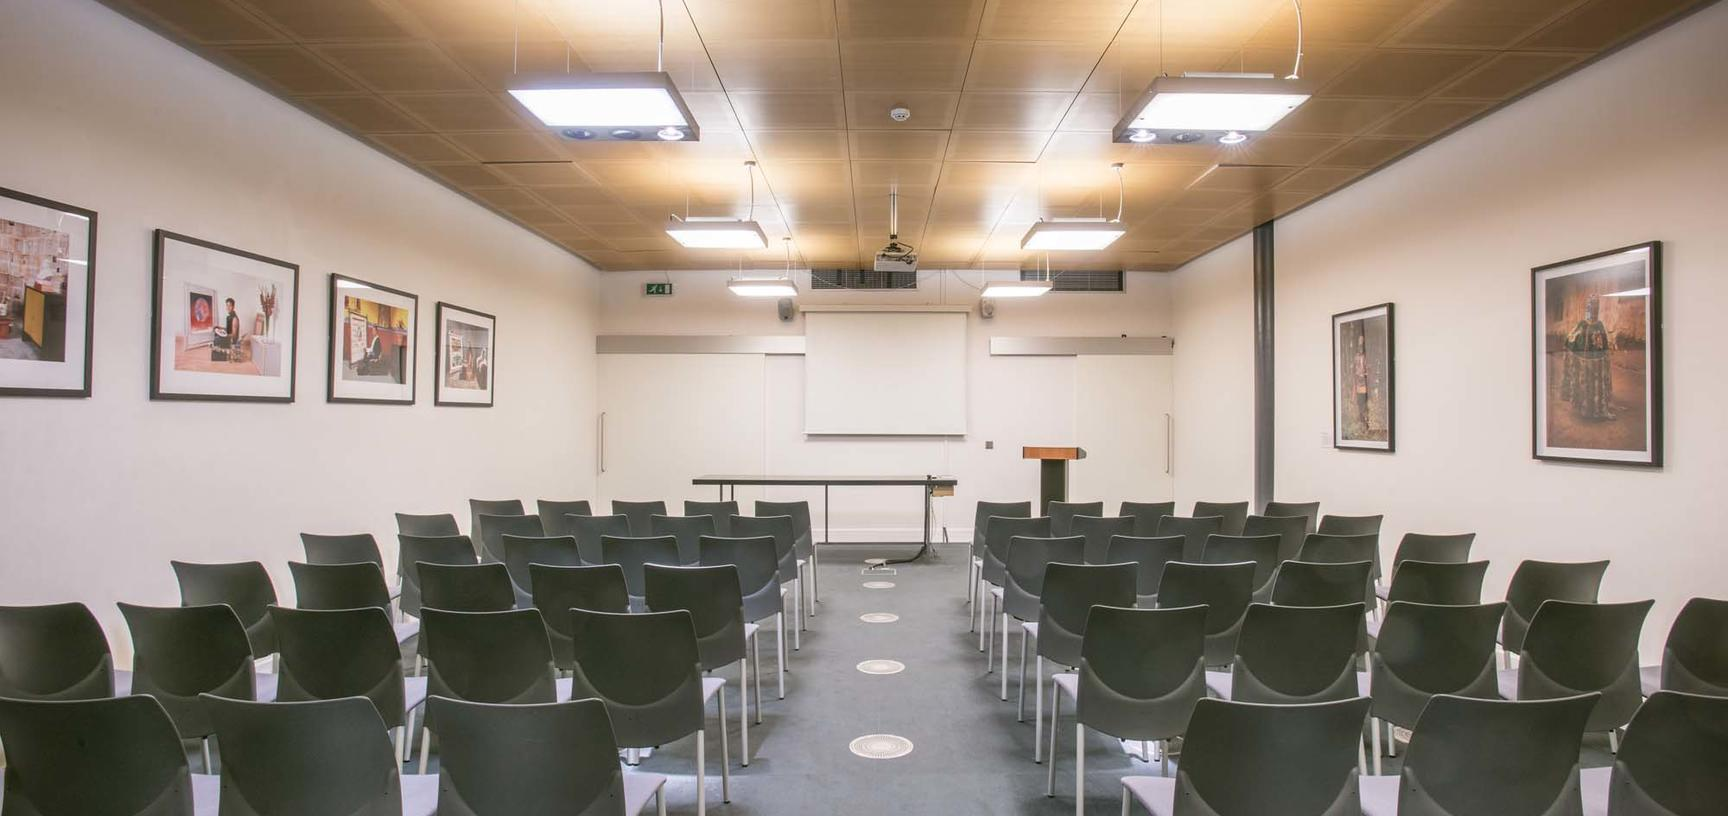 Meeting room with frames on the wall and rows of chairs